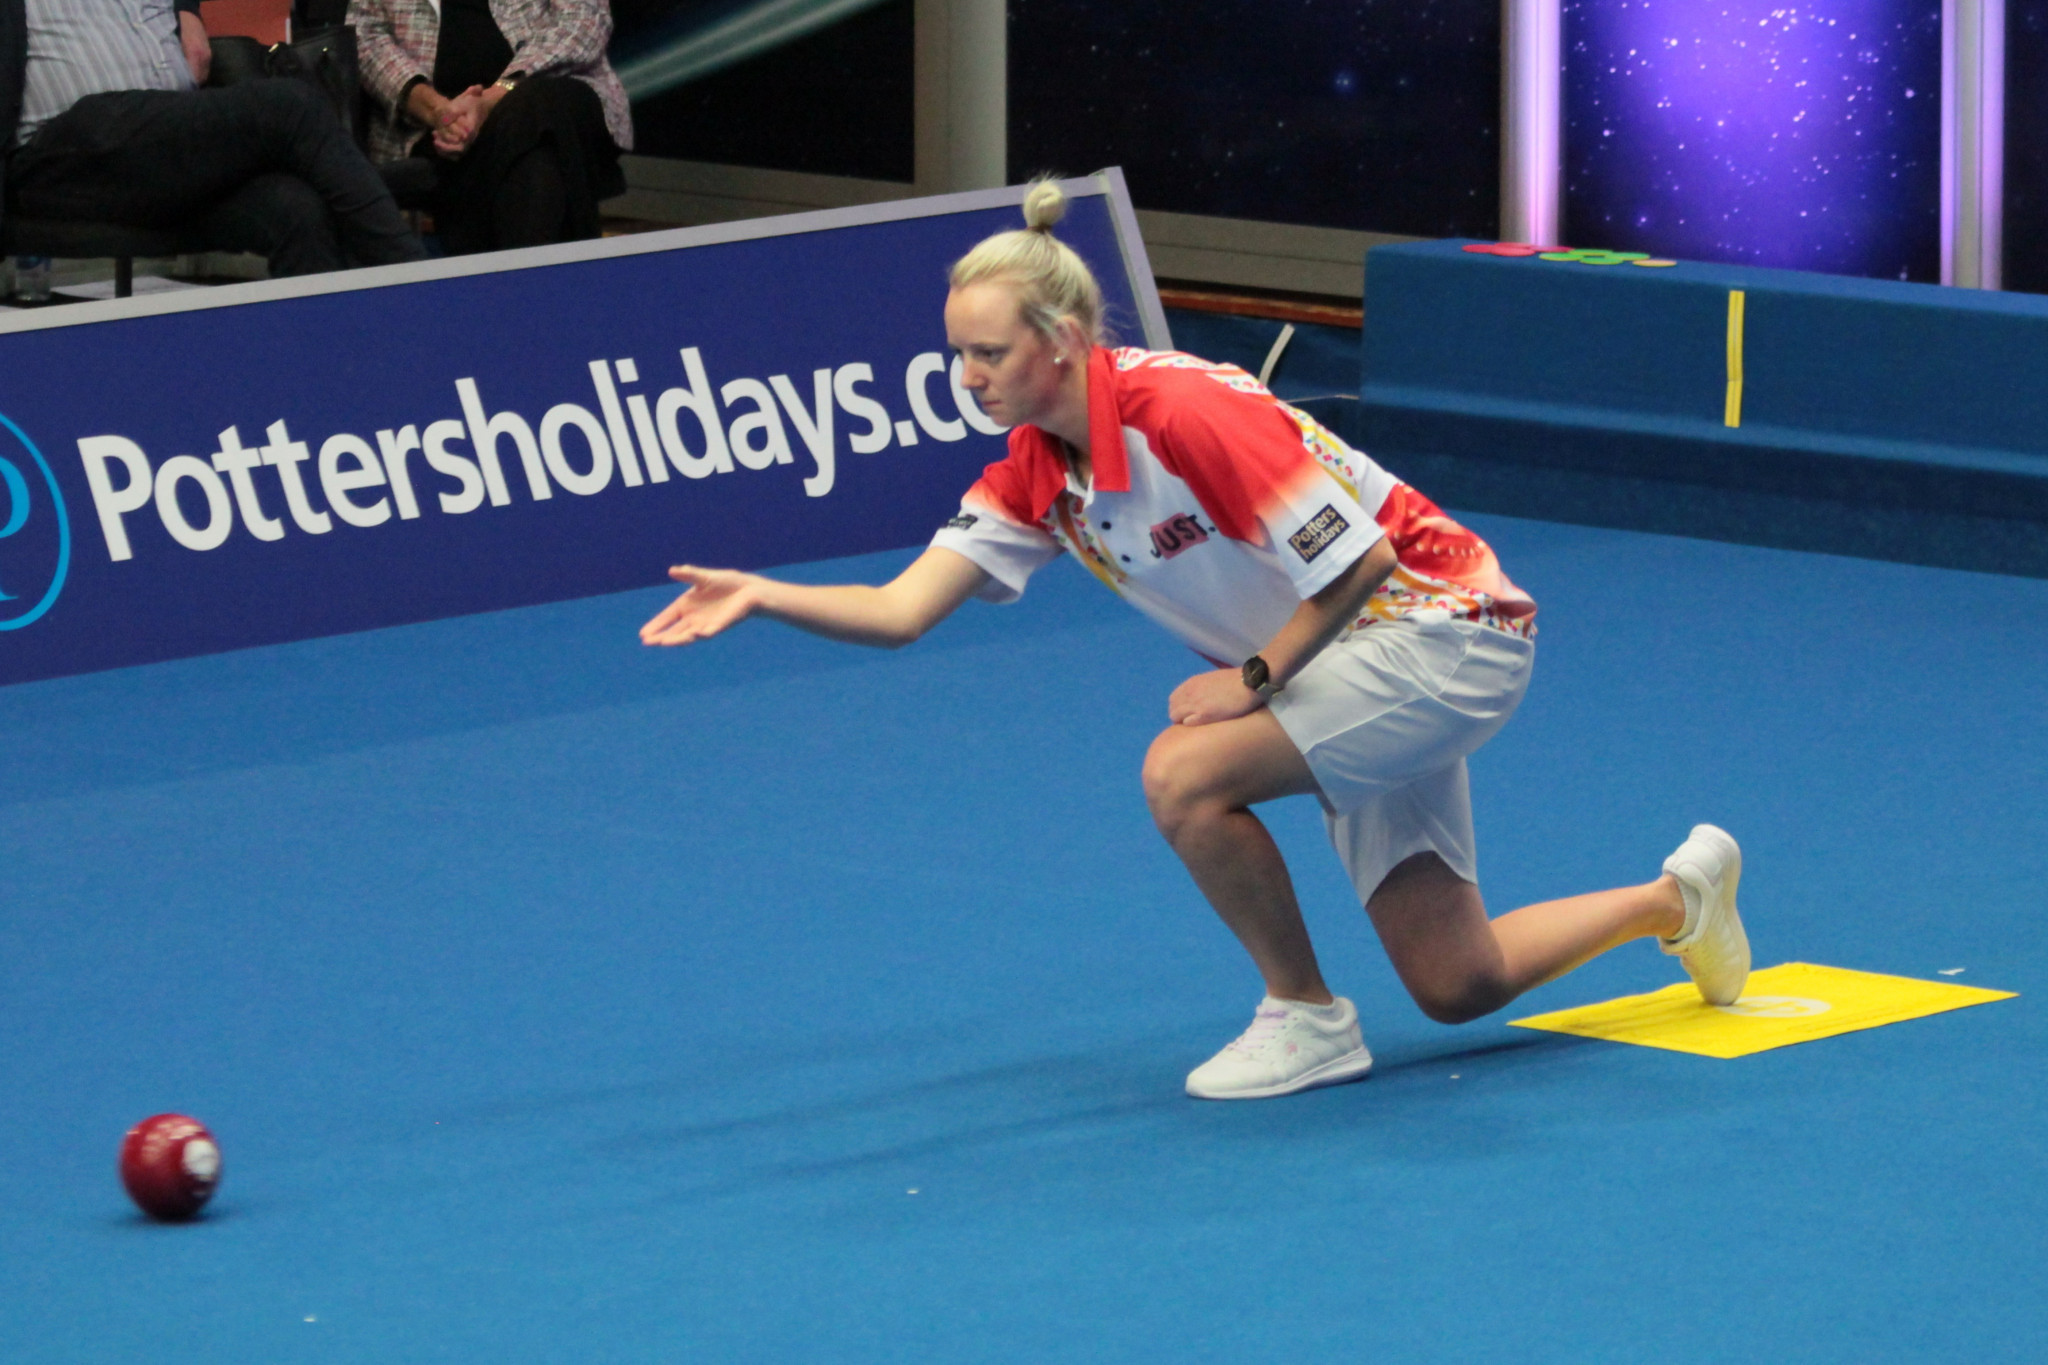 Australia's world under-25 champion Ellen Ryan was beaten on a tie break by Scotland's Lesley Doig in their quarter-final at the World Indoor Bowls Championships in Great Yarmouth ©WorldBowlsTour